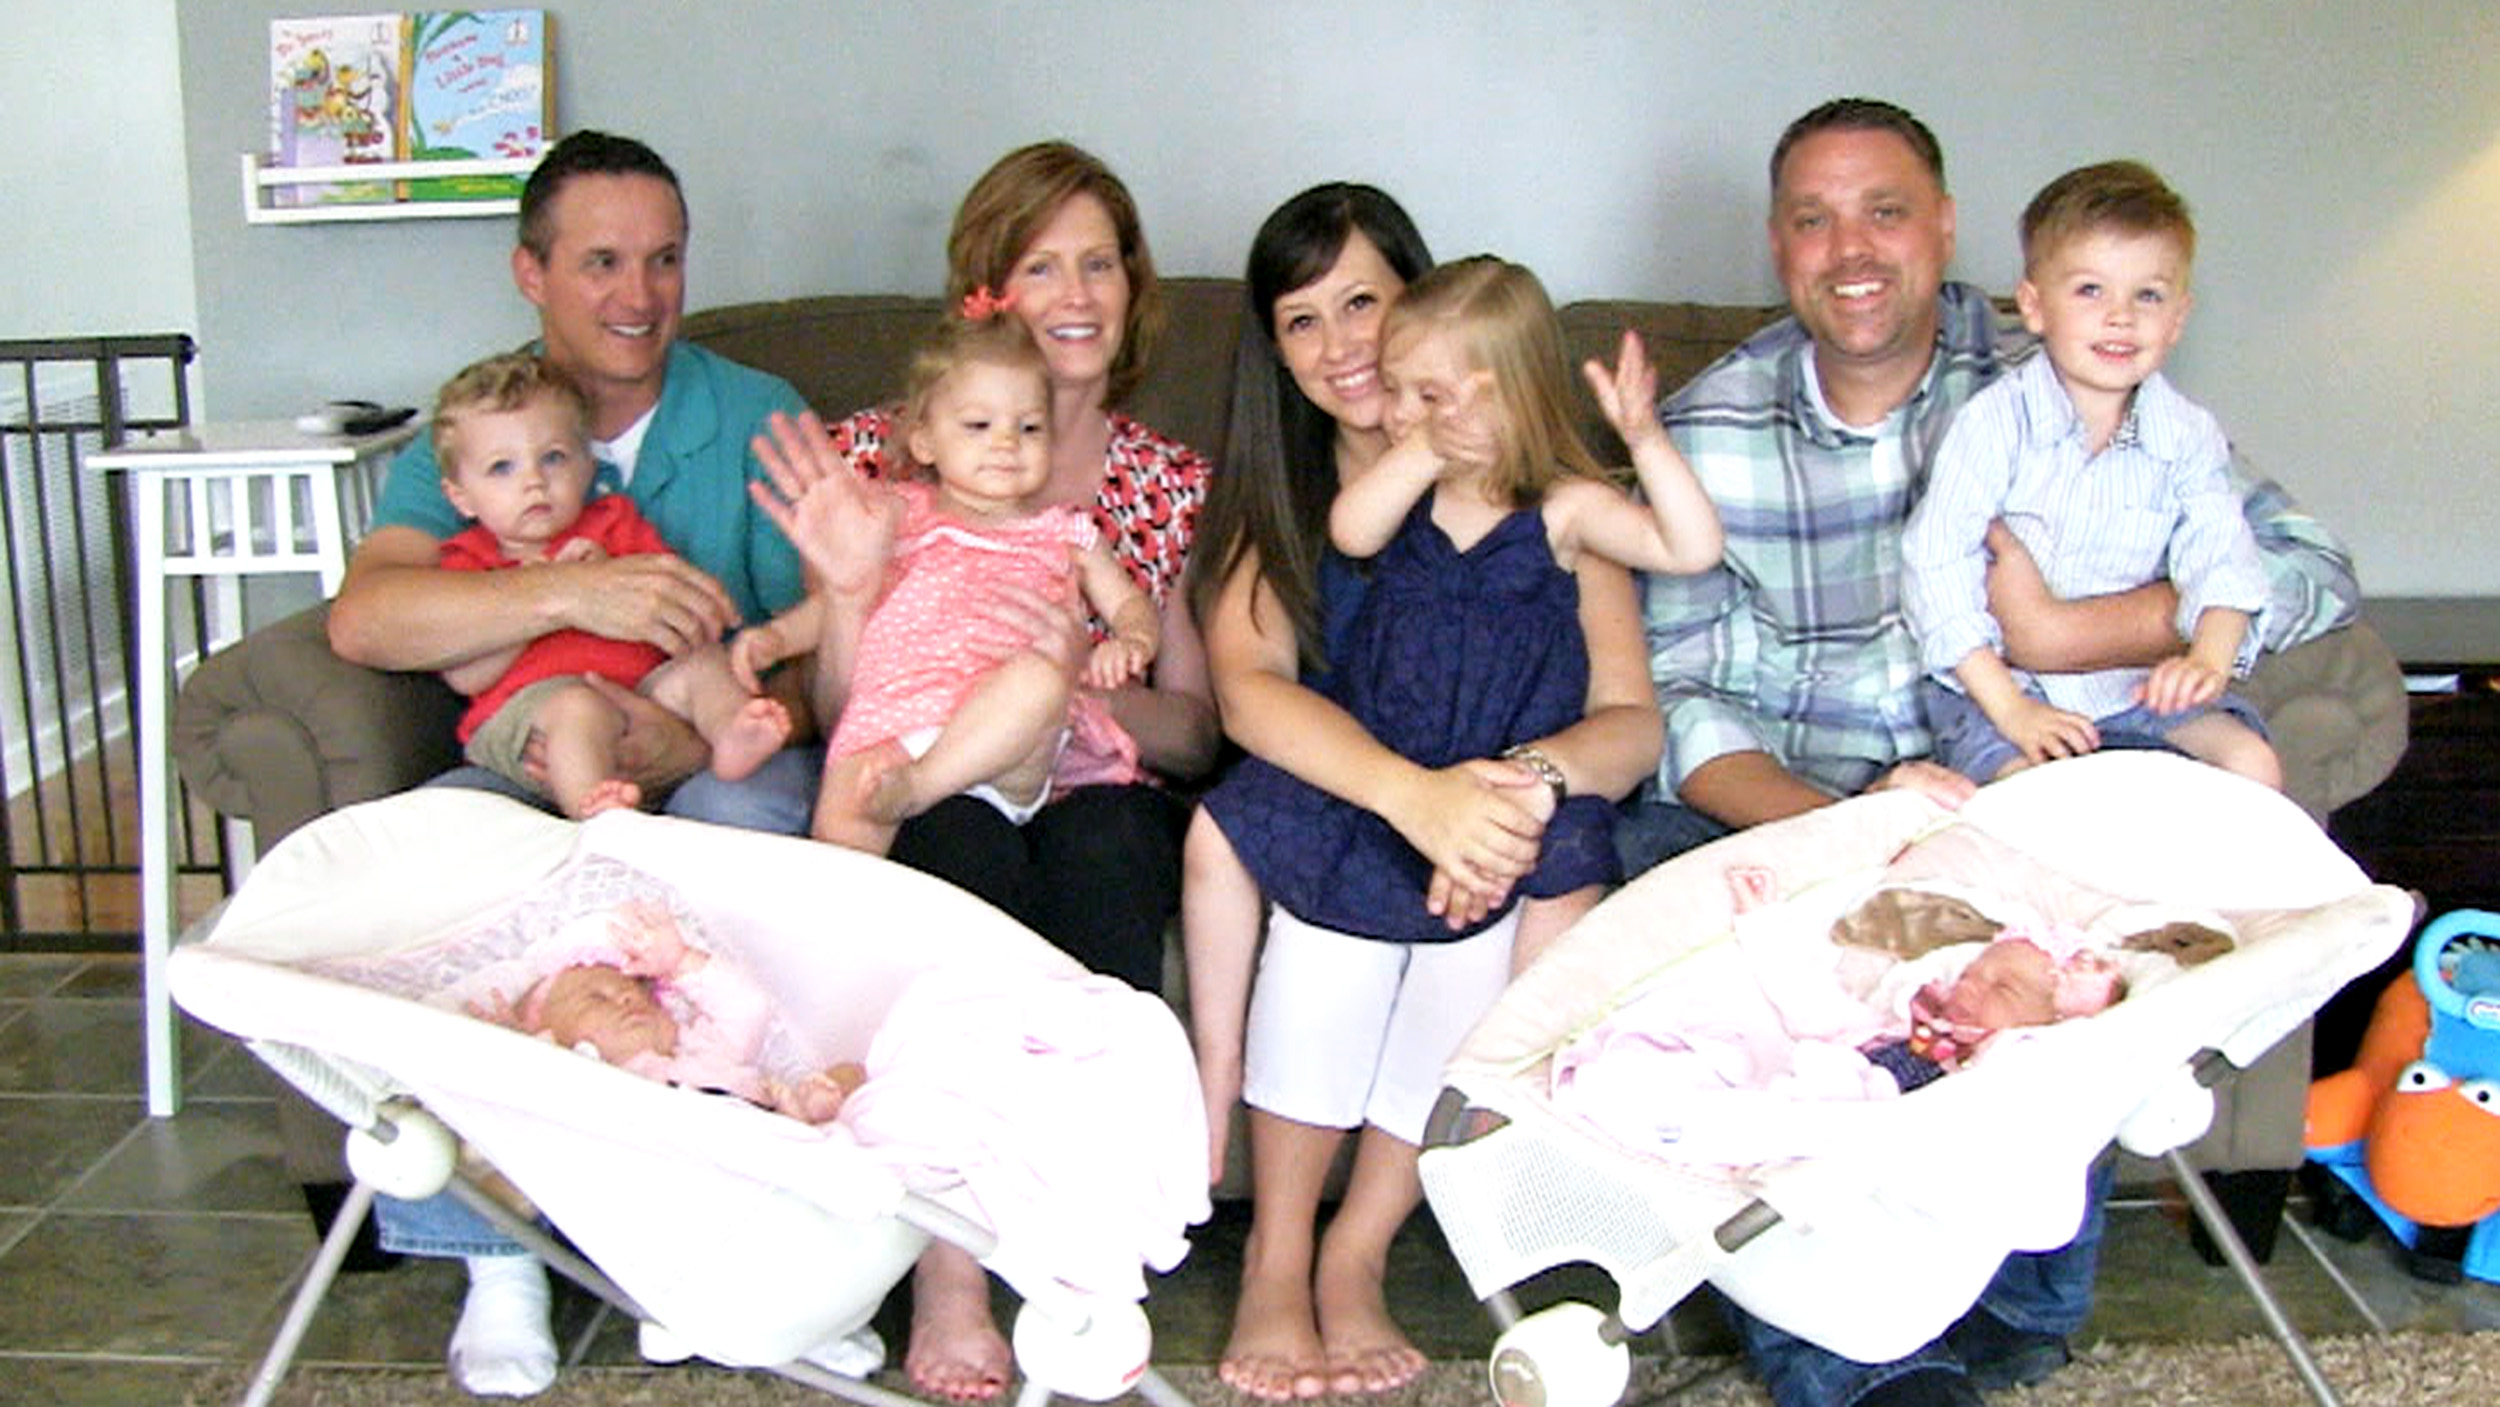 mom gives birth to 3 sets of twins in 5 year period